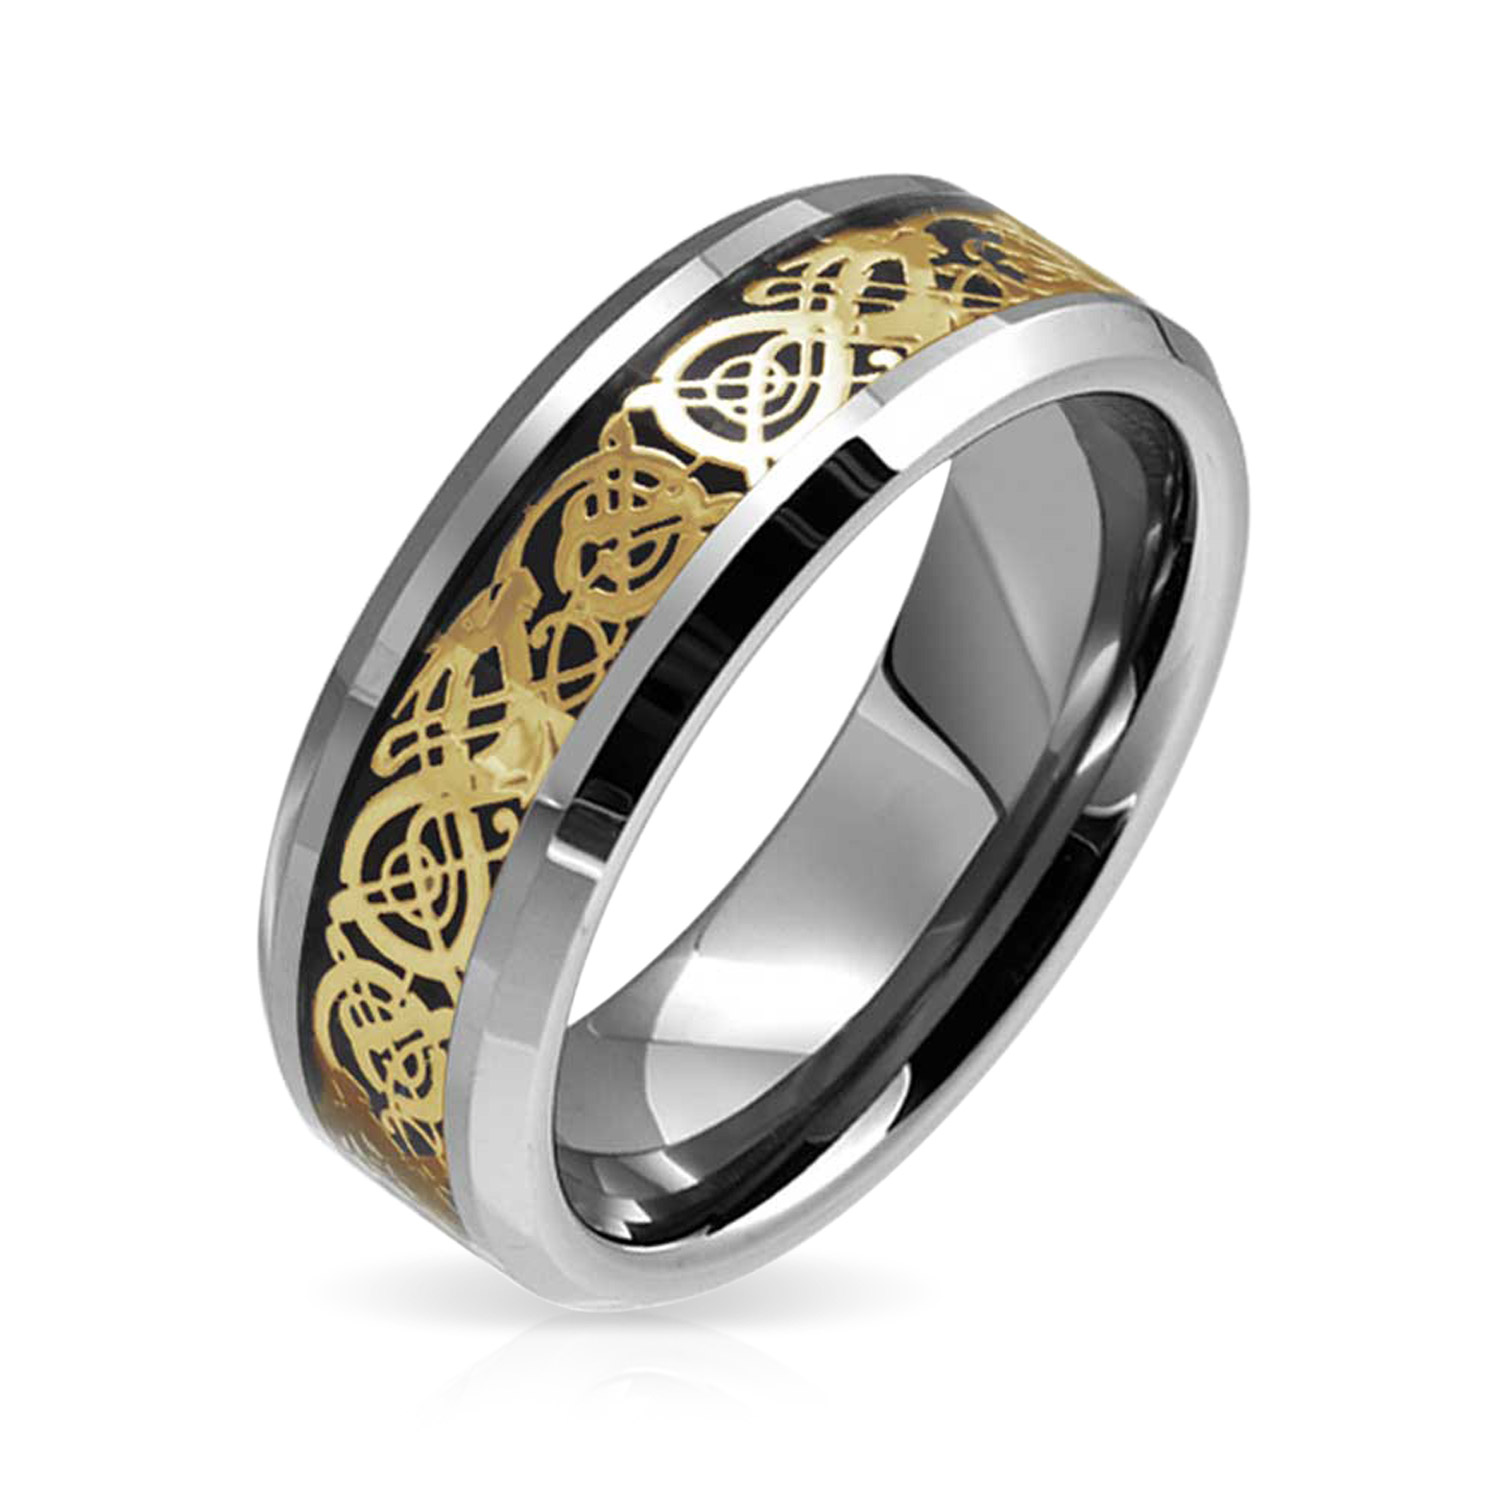 It is just an image of Golden Black Silver Two Tone Celtic Knot Dragon Inlay Couples